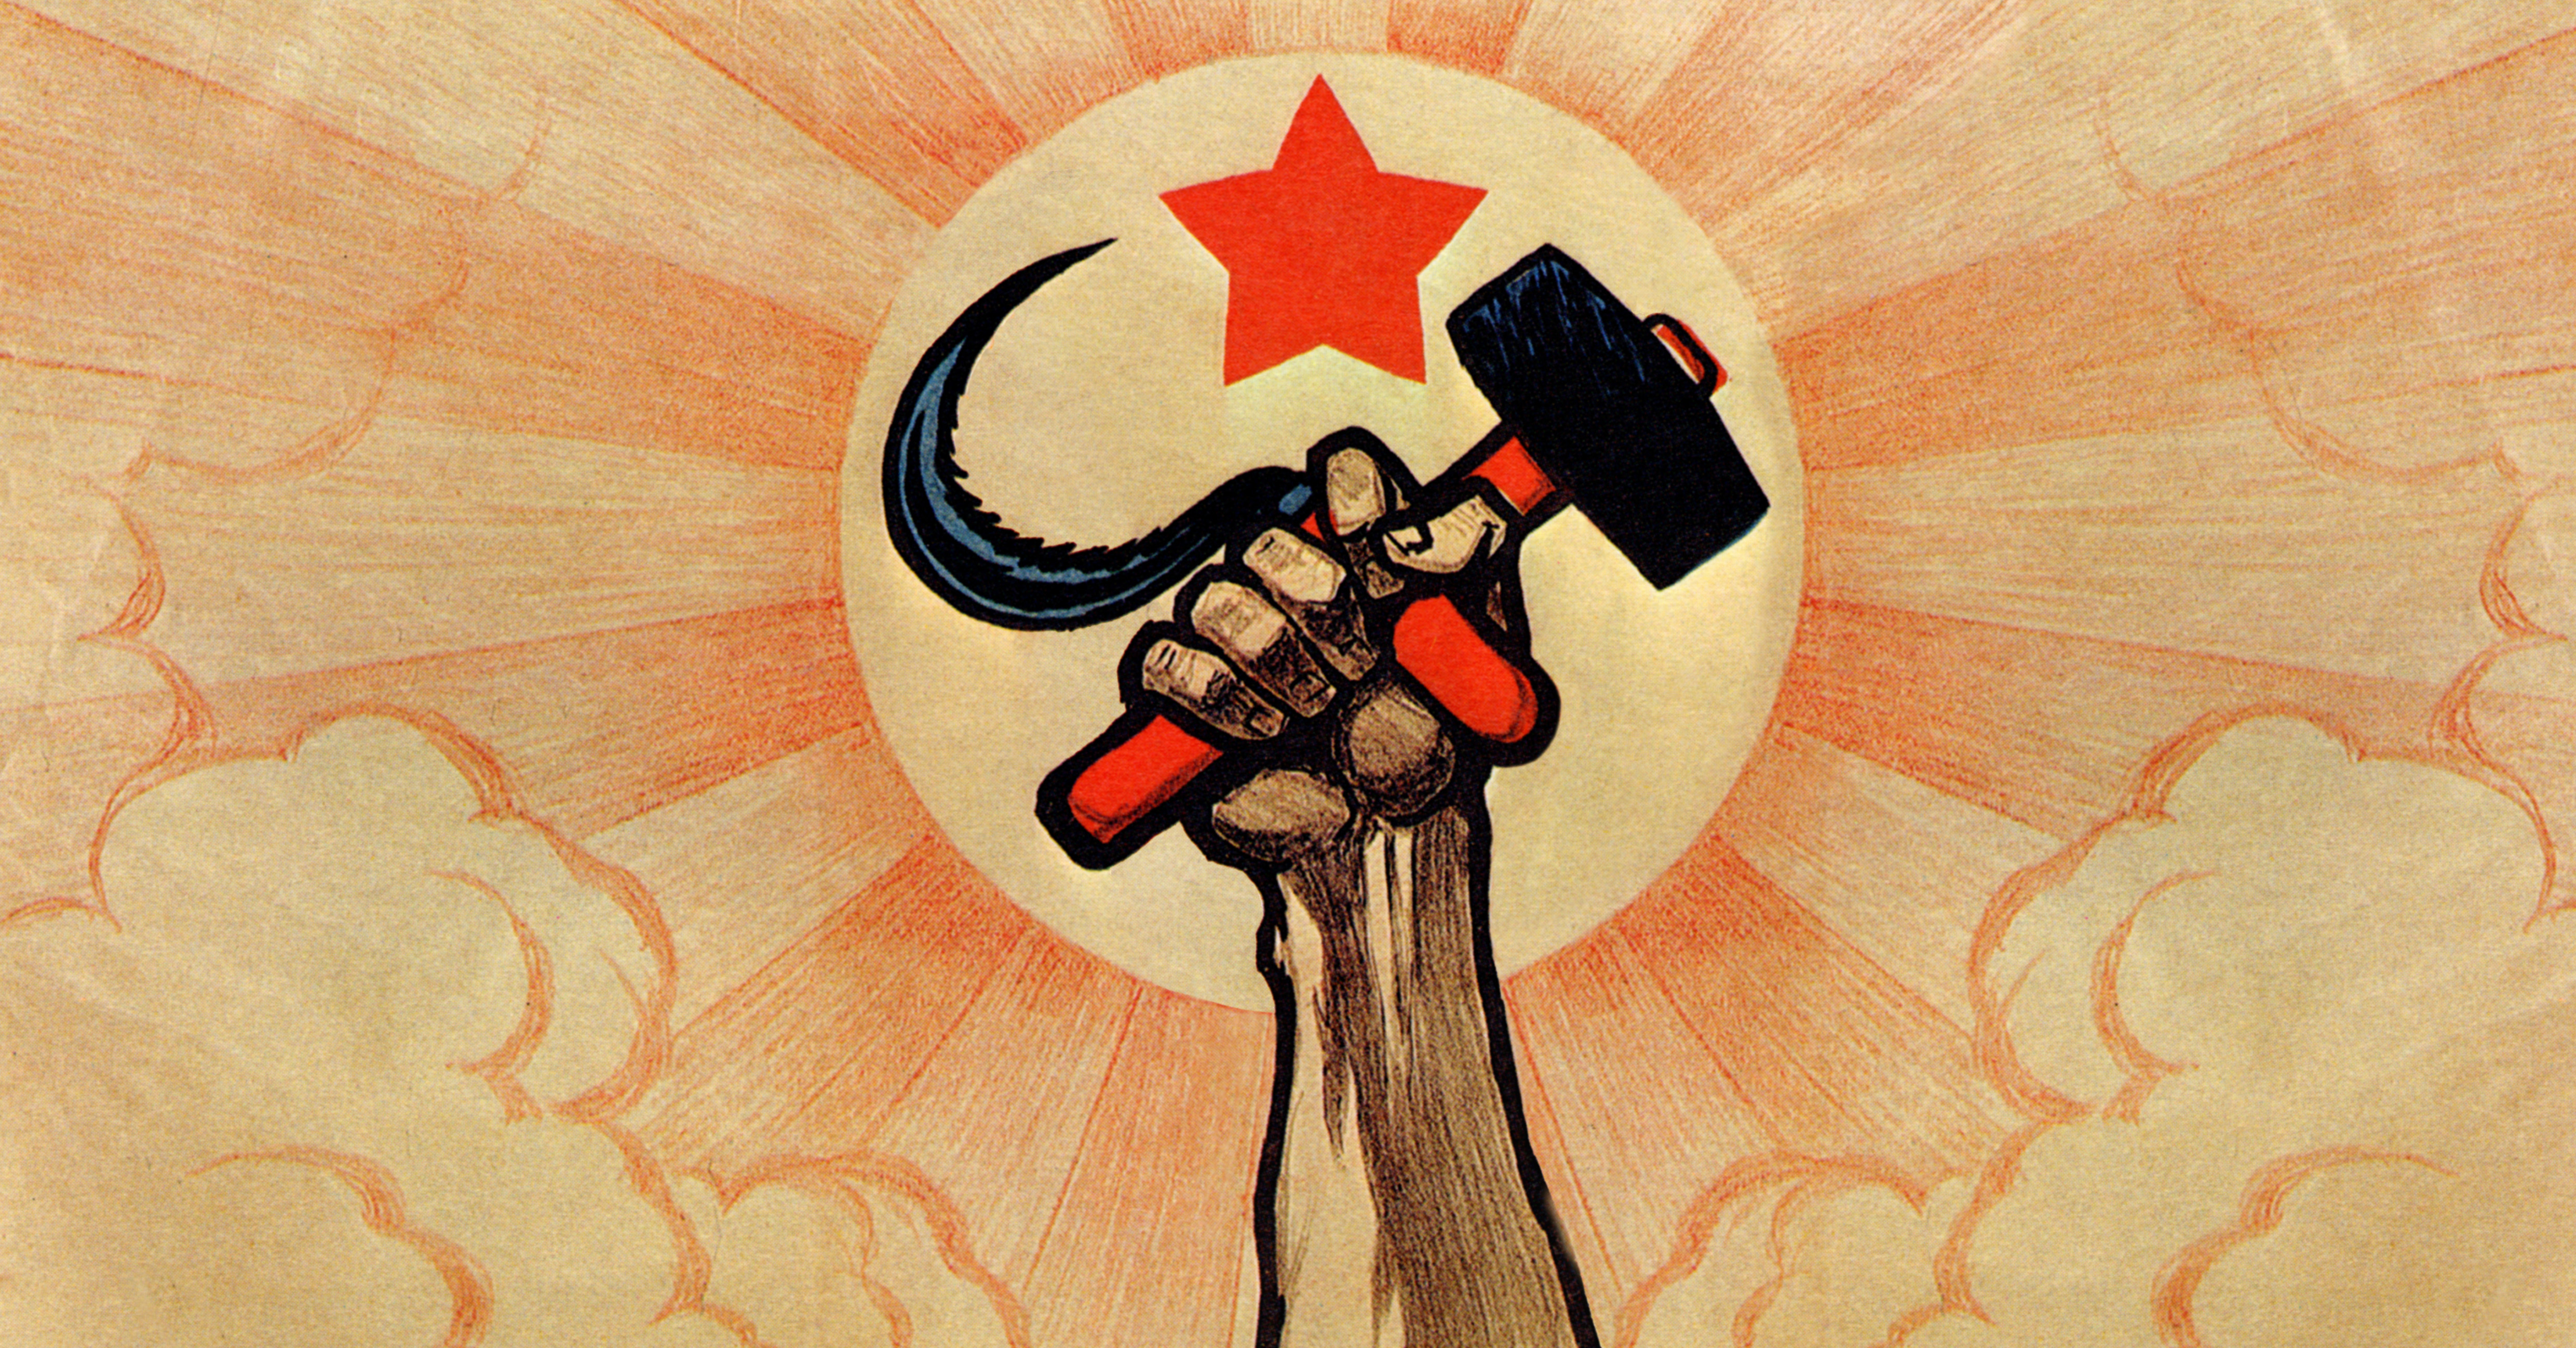 The Collapse of the Soviet Union End of an Empire